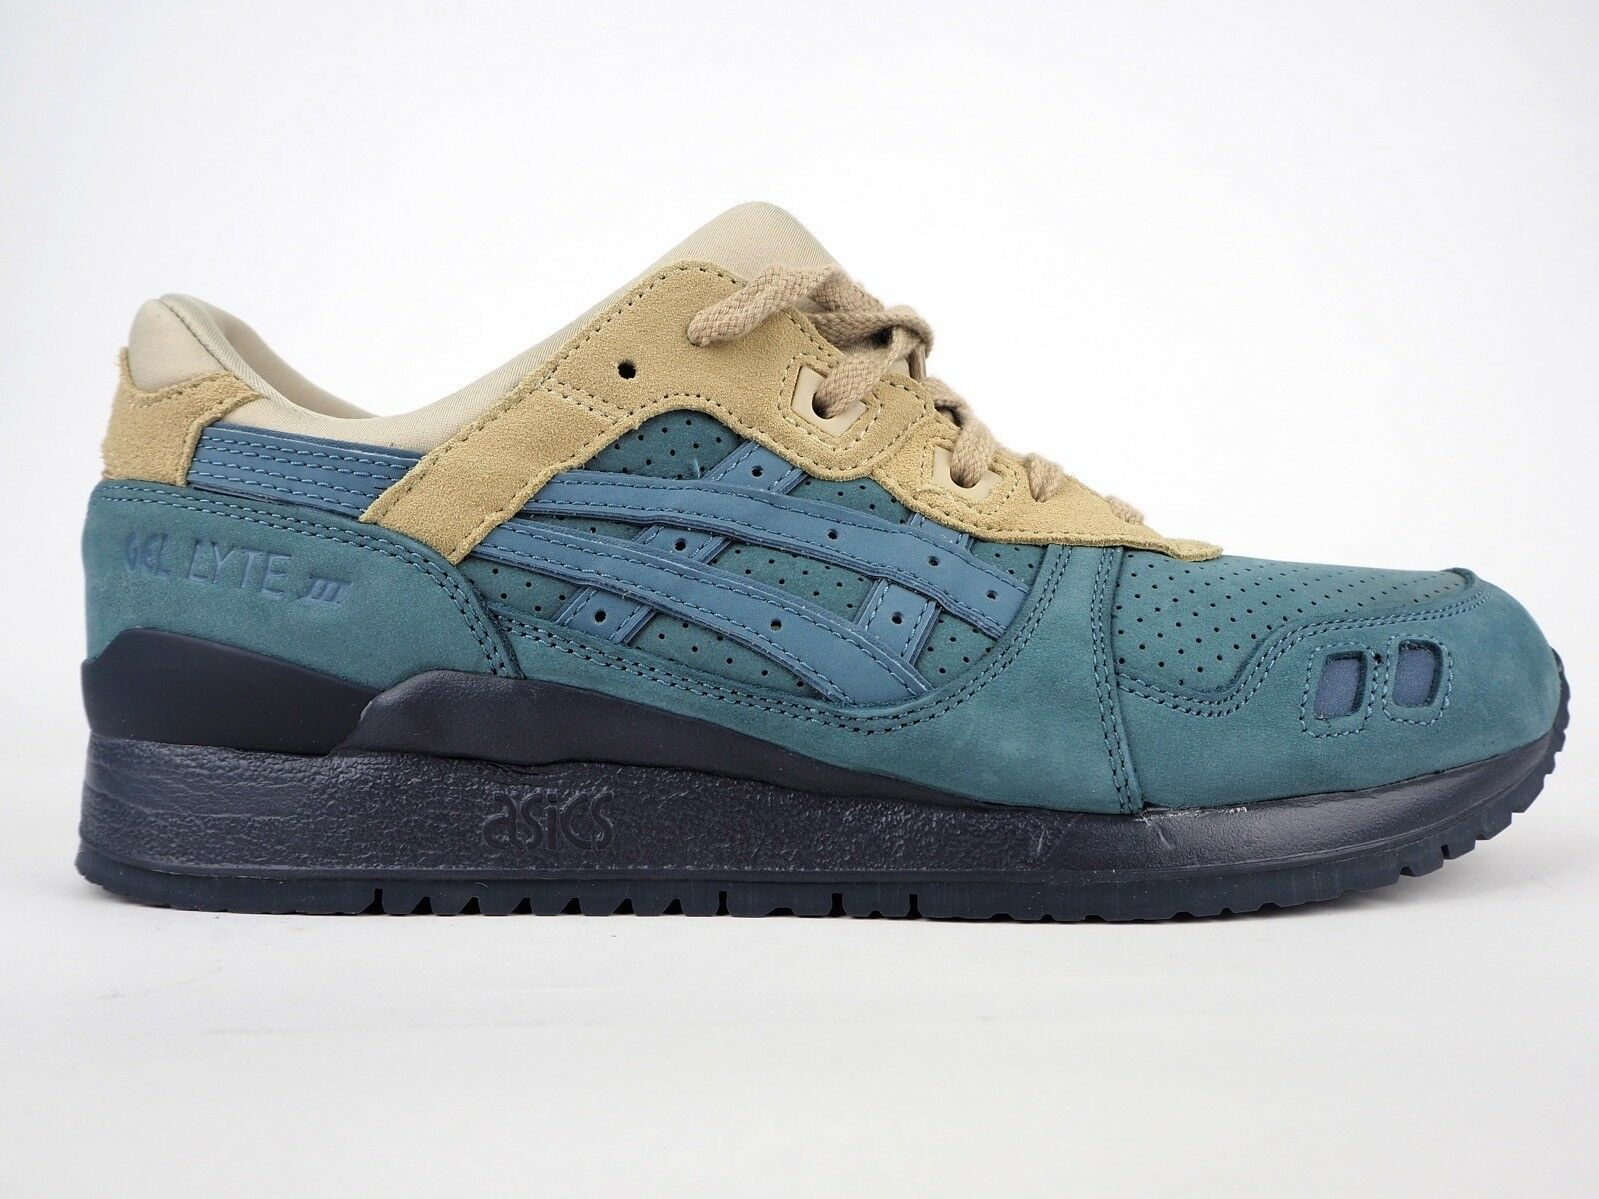 Asics Gel Lyte III H6W0L 4646 bluee Mirage Lace Up Leather Casual Trainers